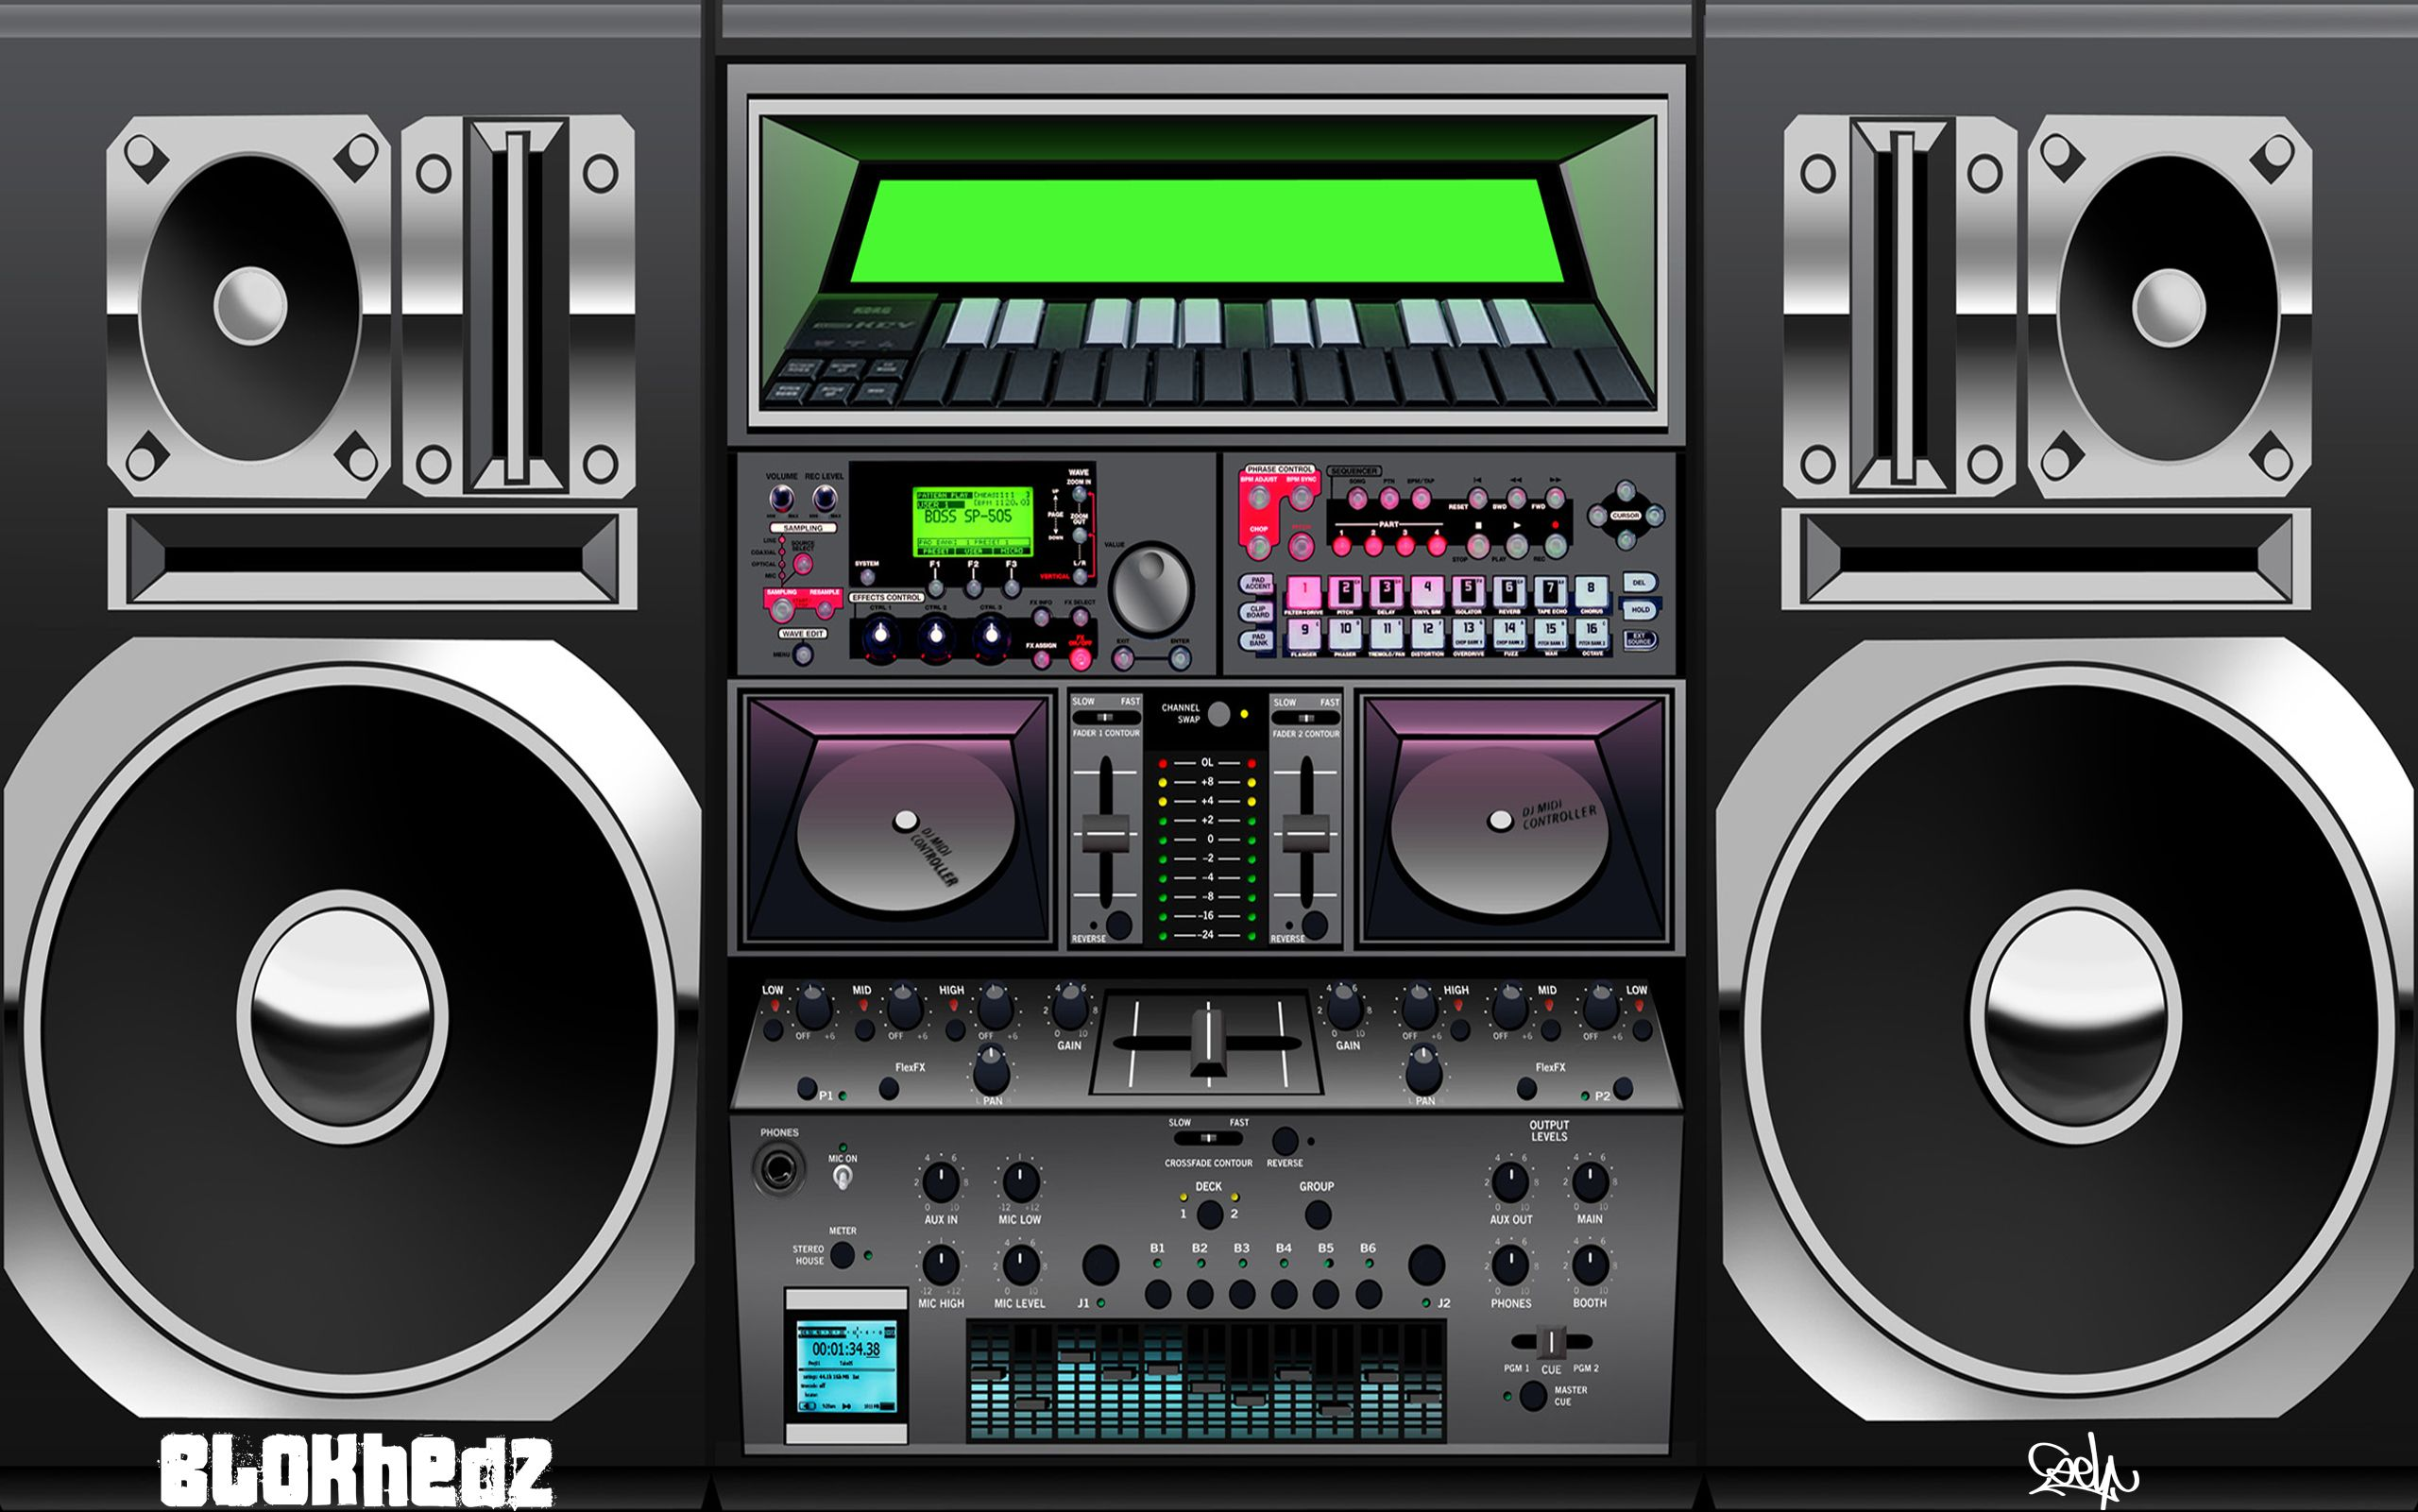 free download amazing boombox images